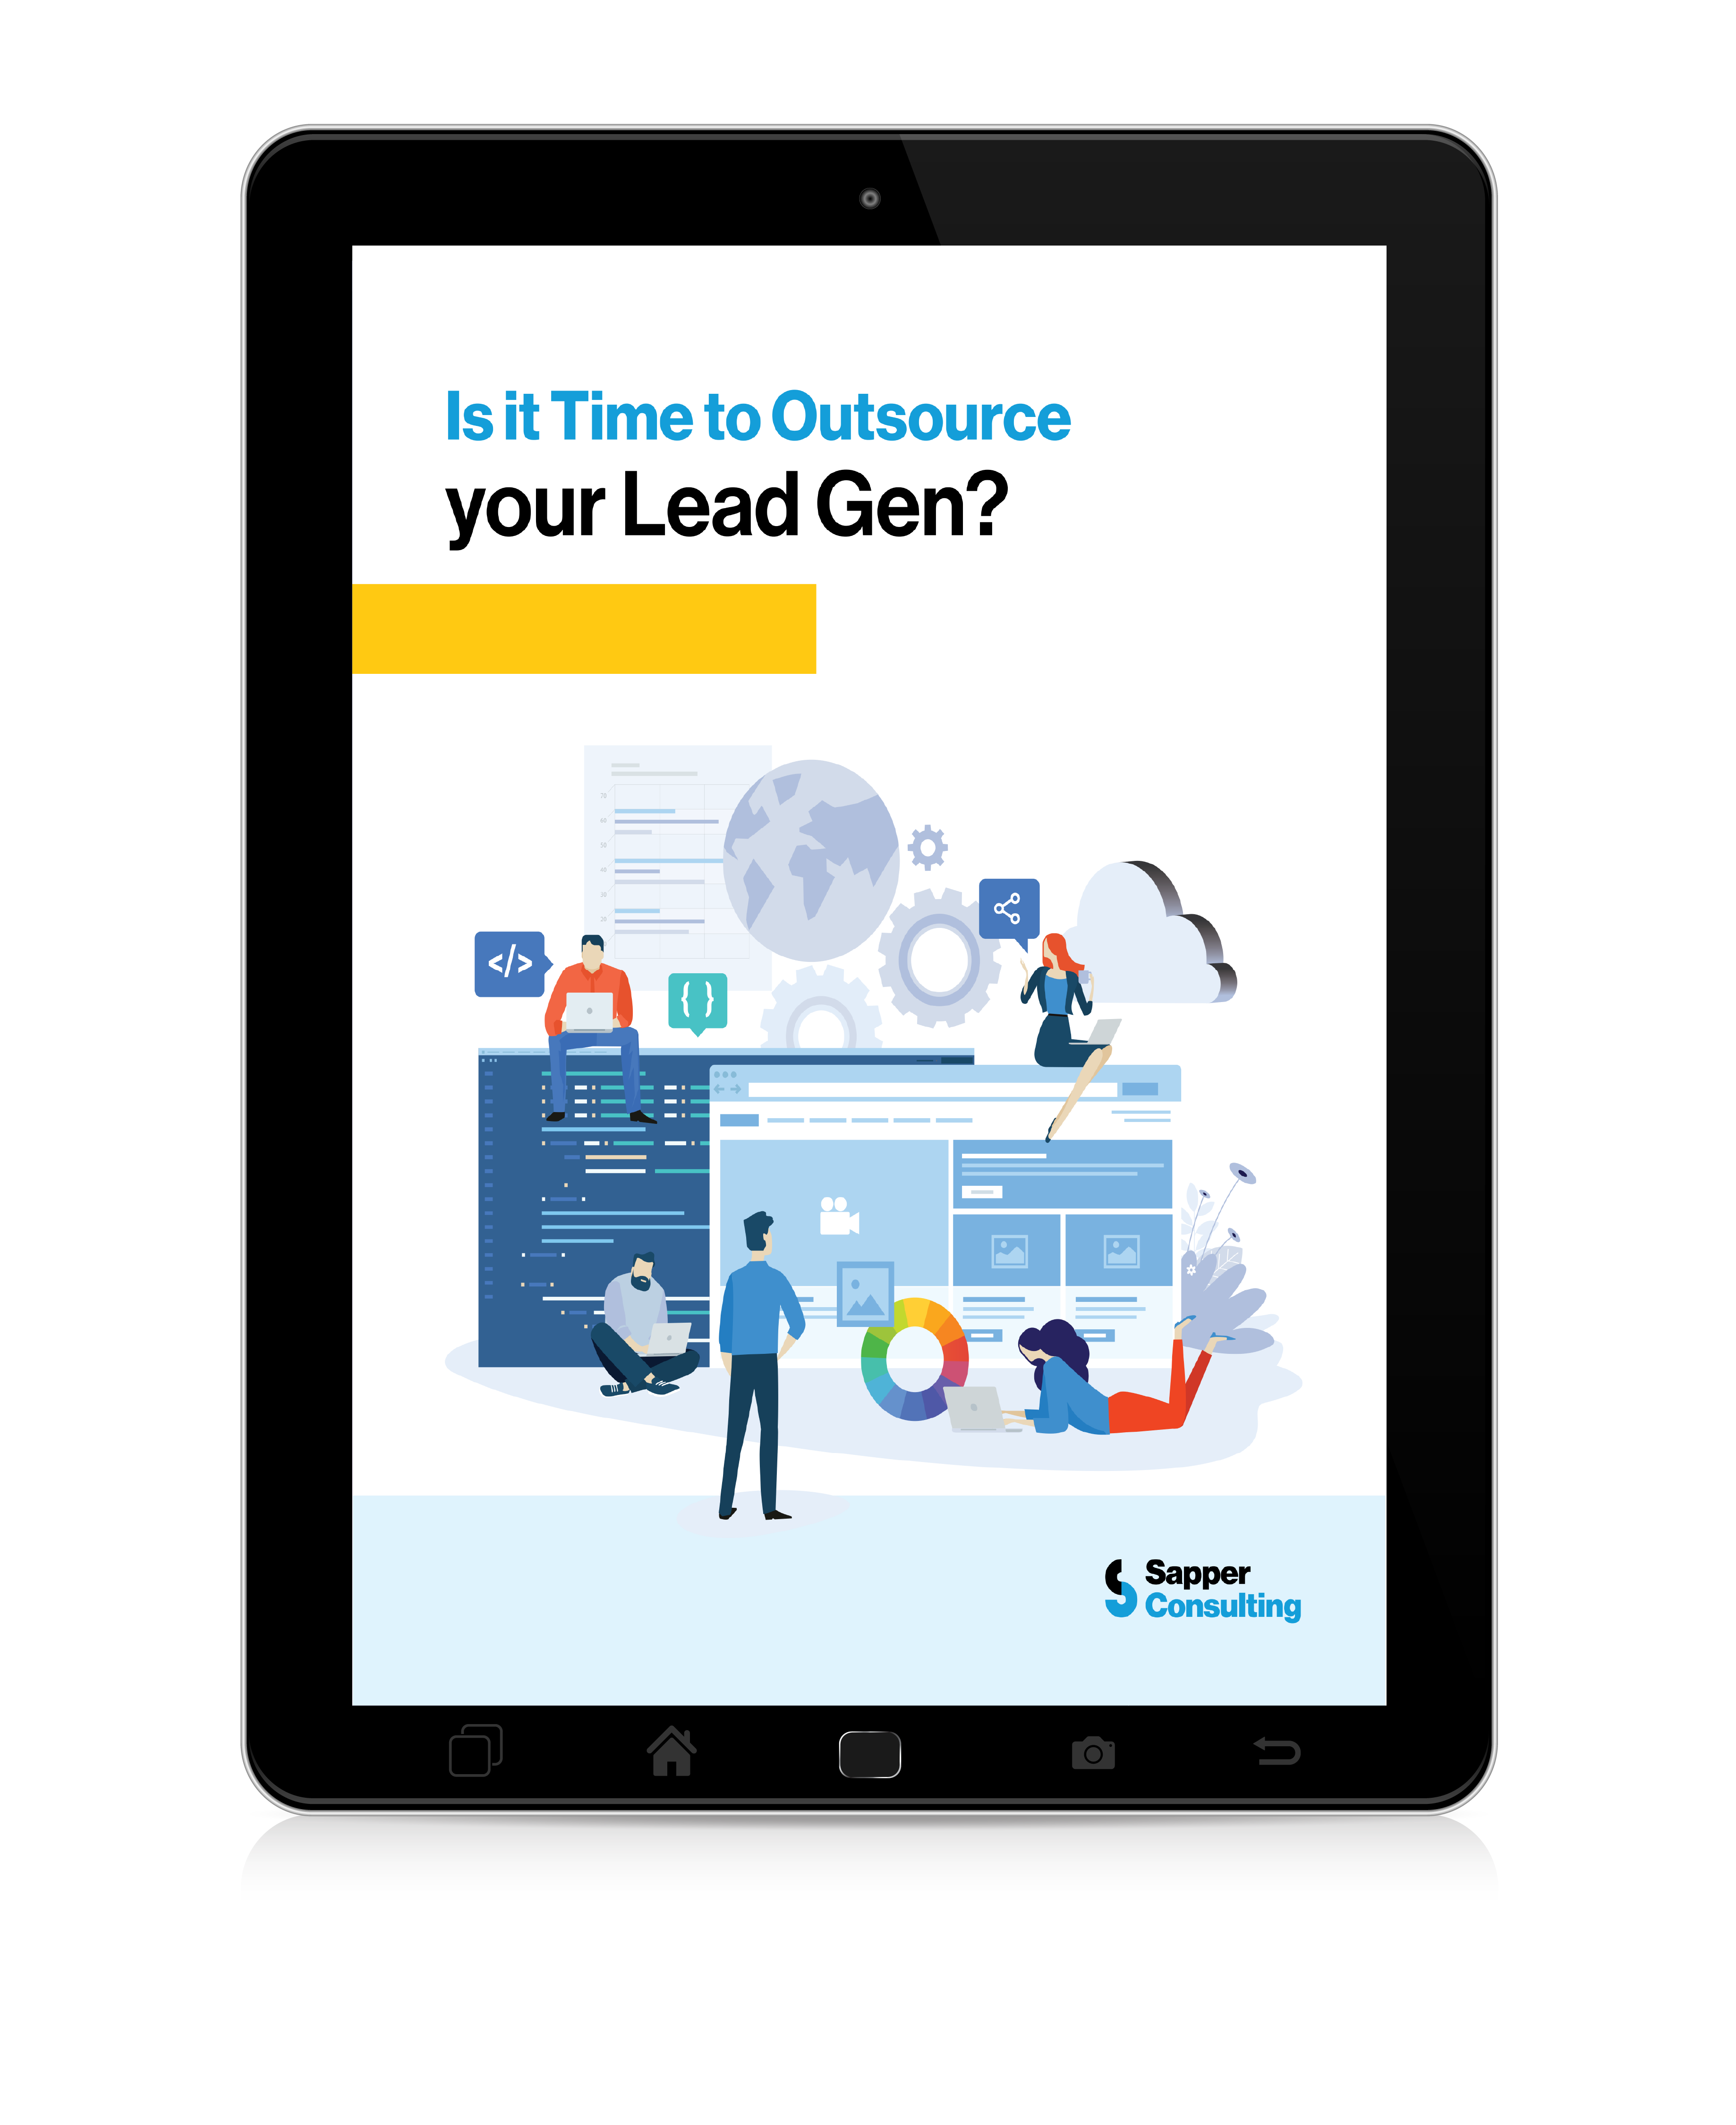 When is it time to outsource lead gen